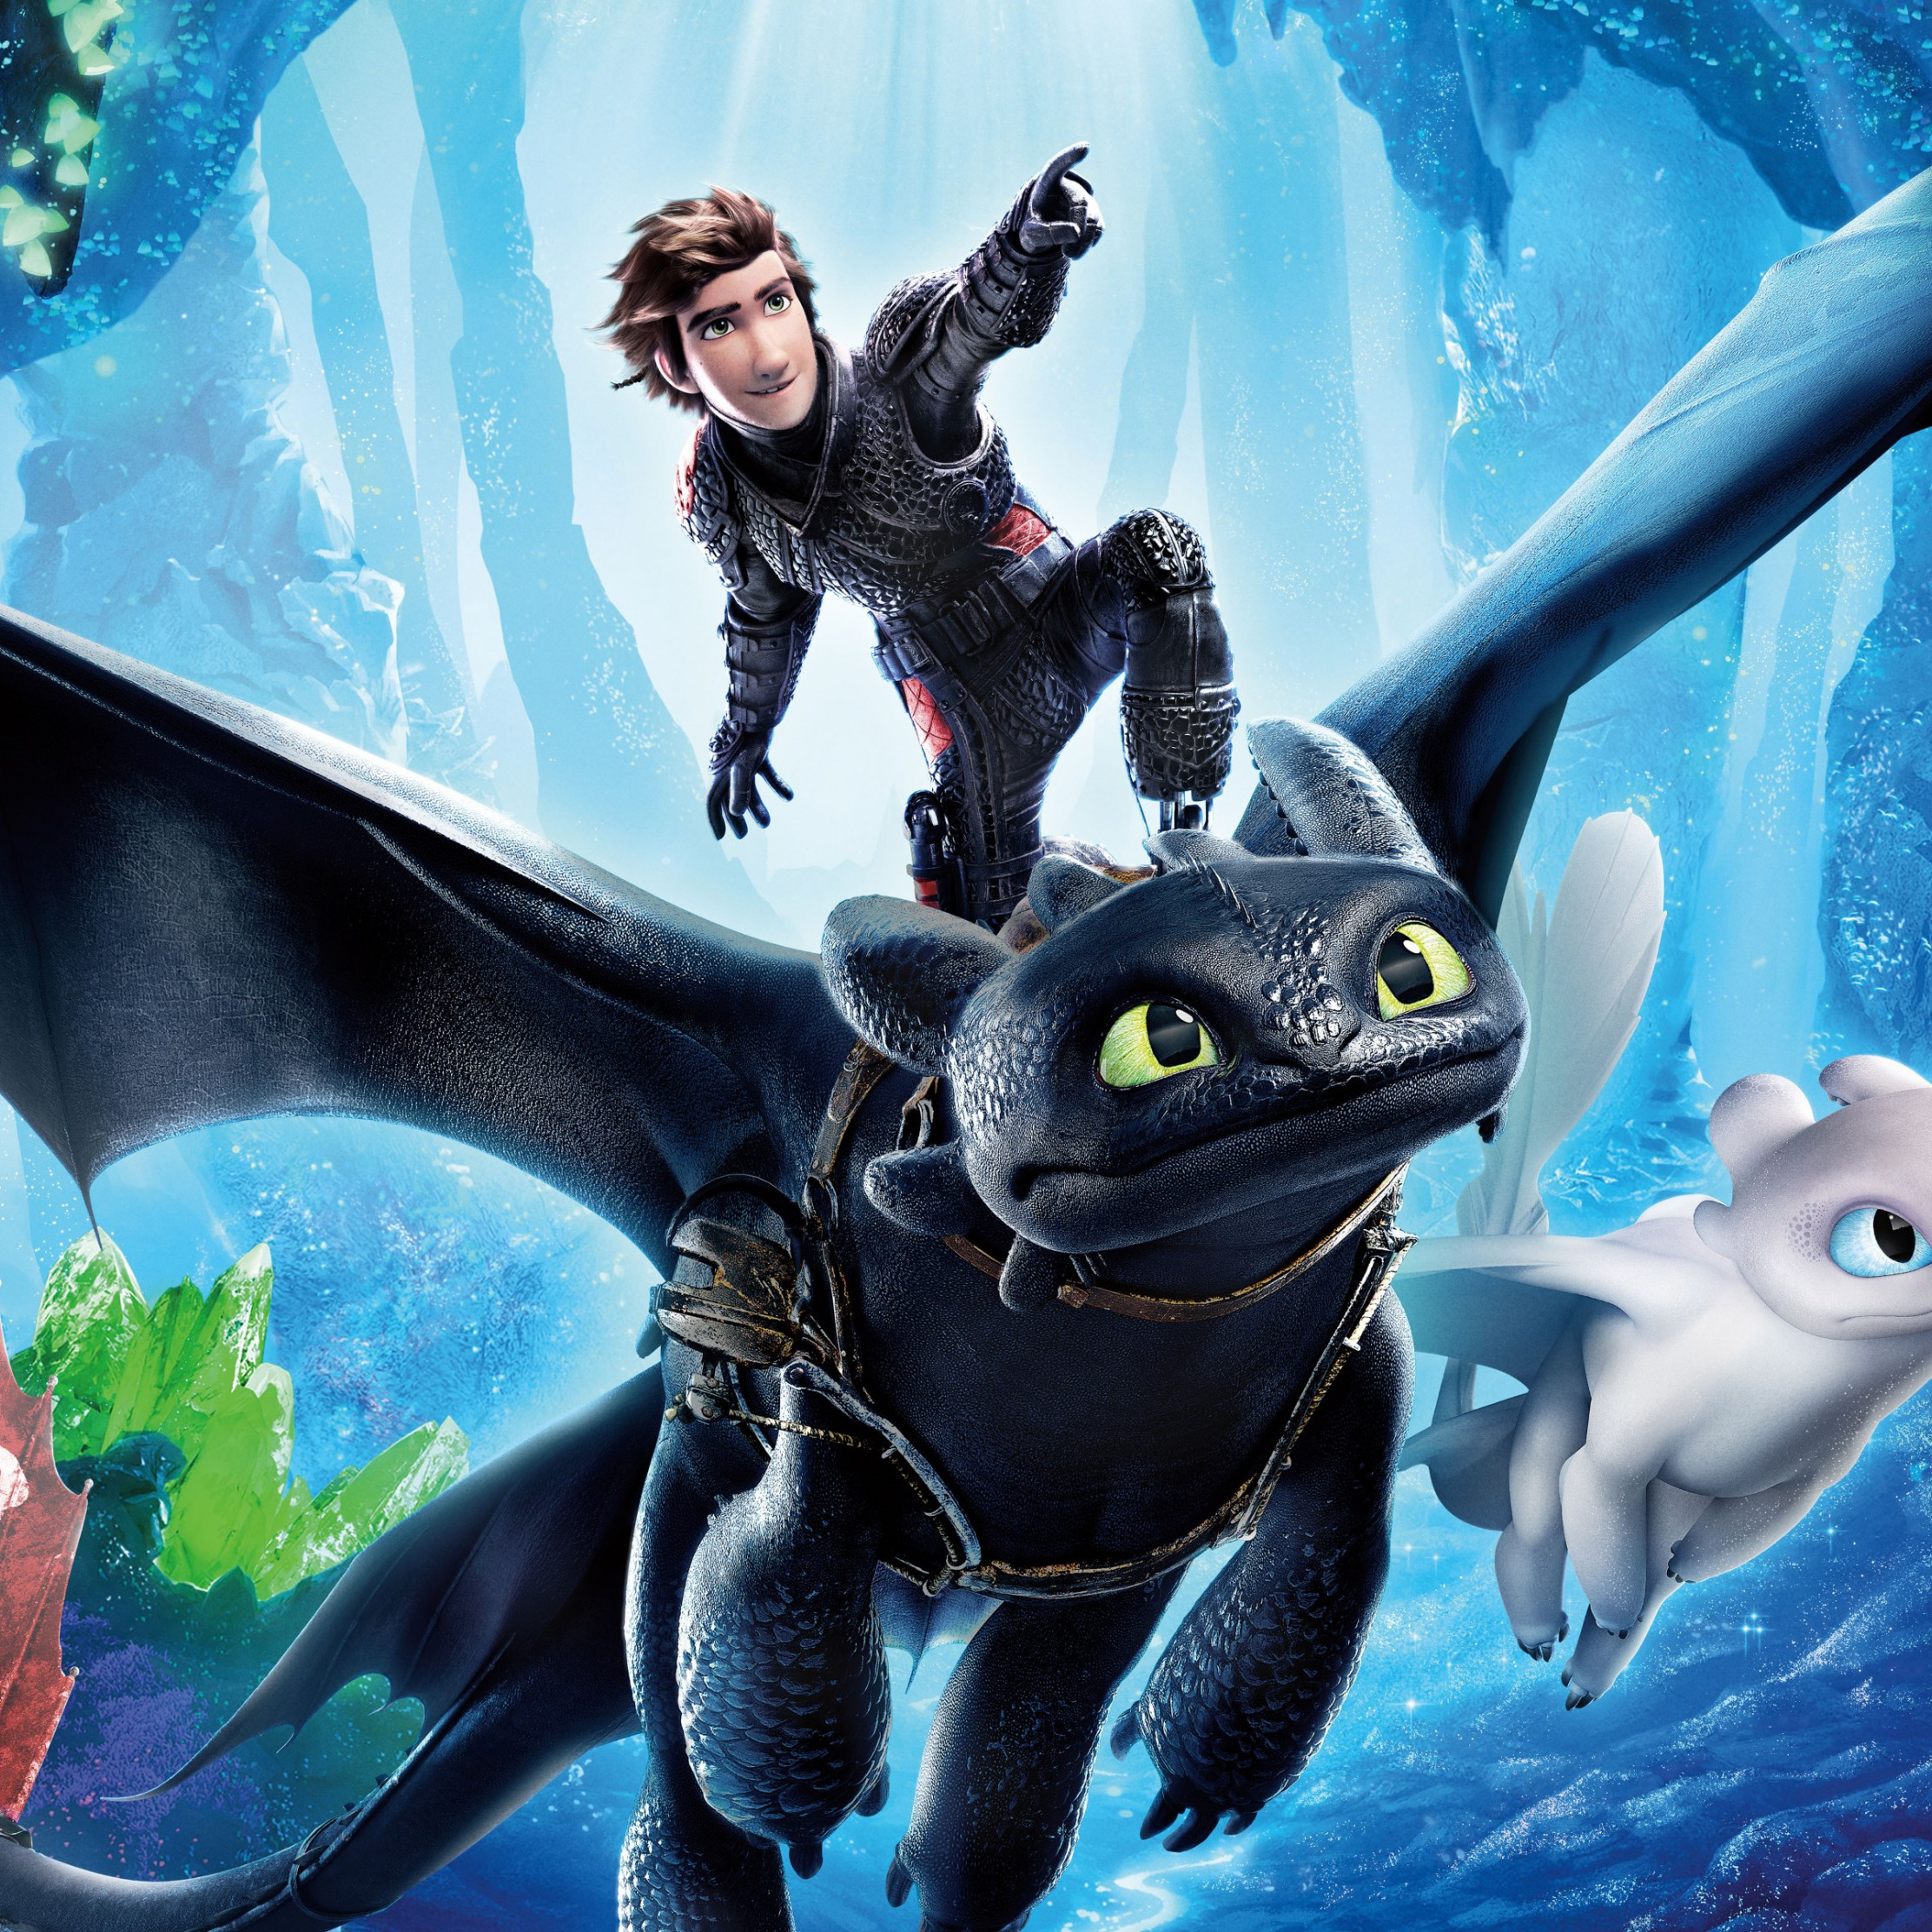 How to Train Your Dragon 2019 wallpaper 2224x2224